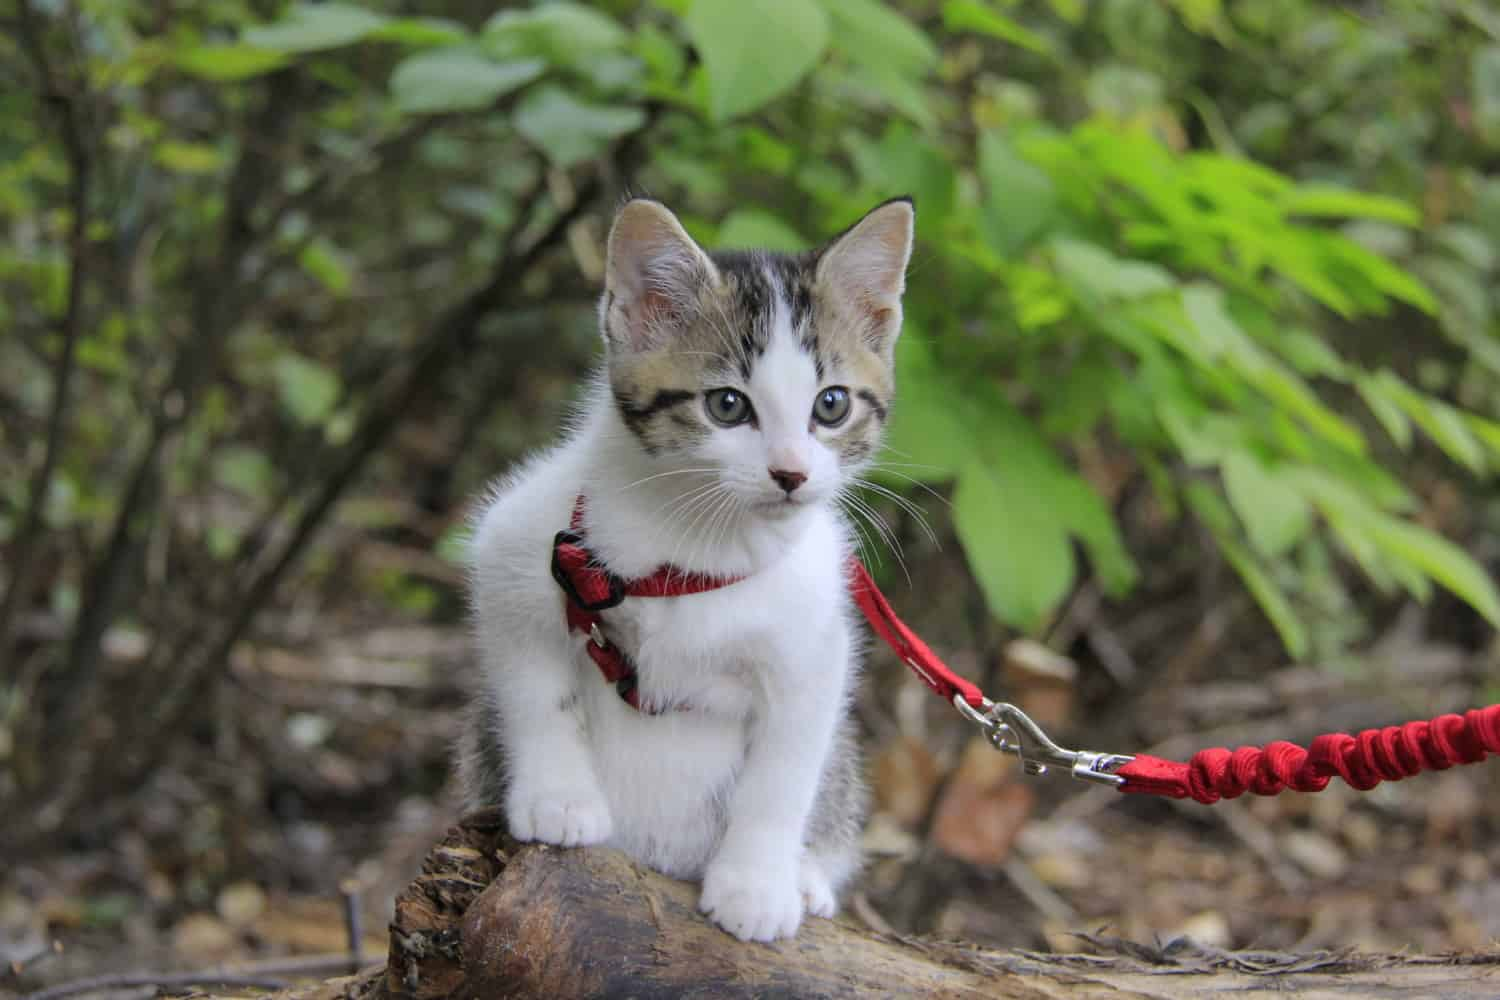 Chips the grey kitten on a log in his red cat harness